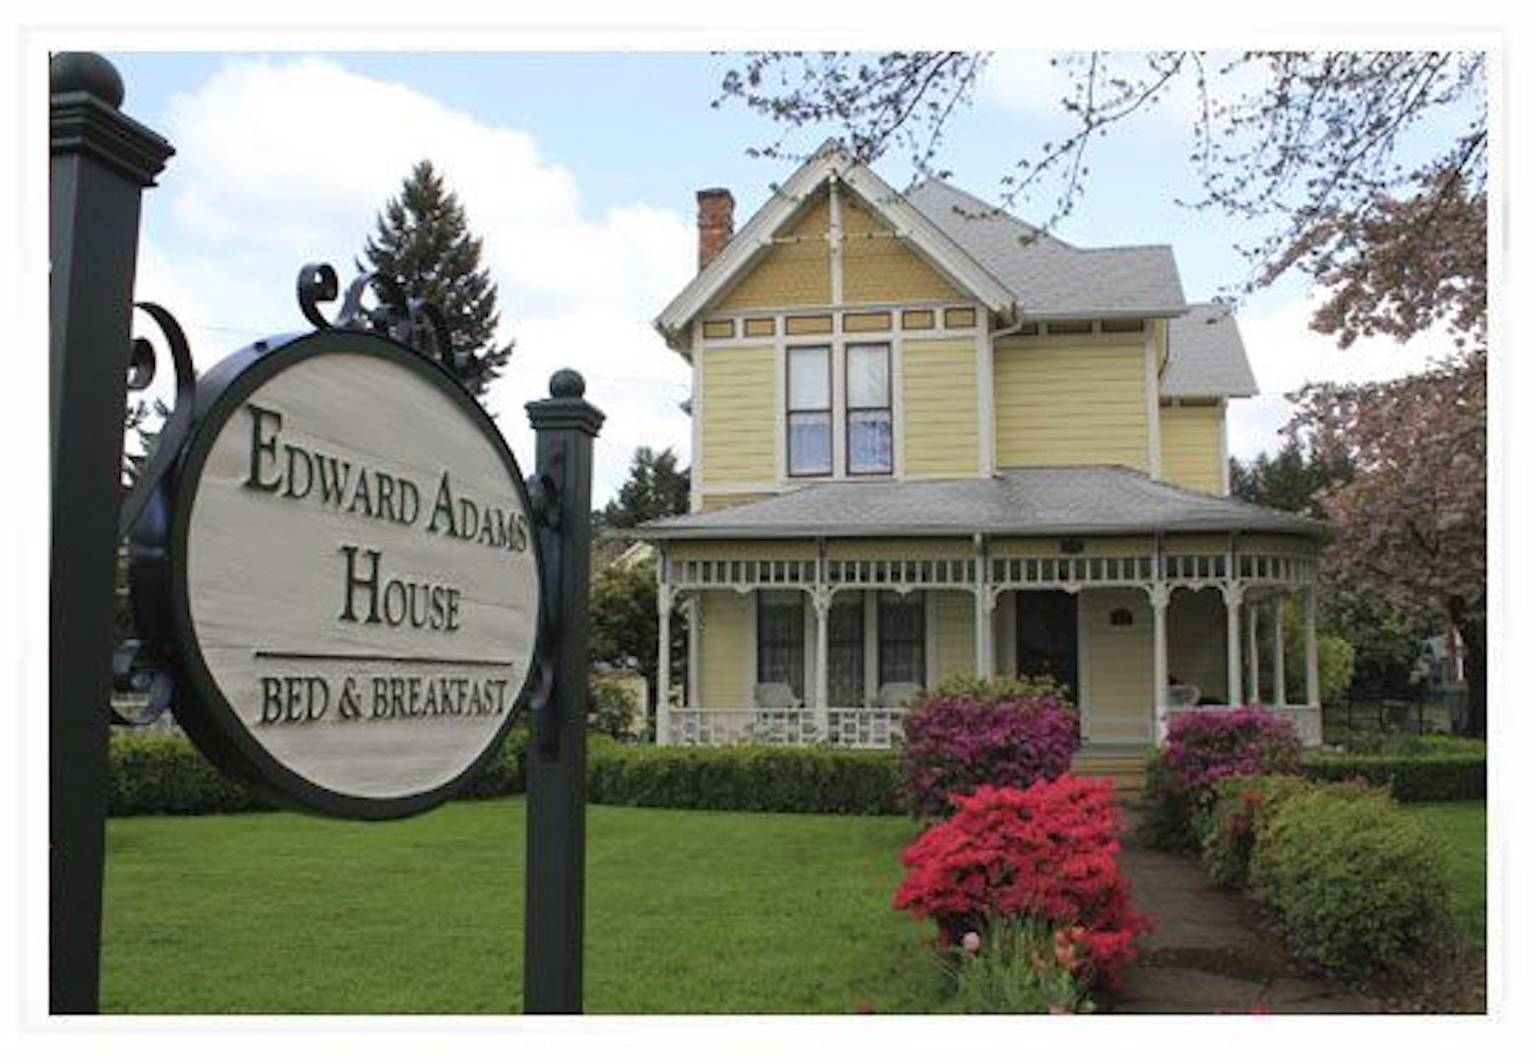 A sign in front of a house at Edward Adams House B&B.